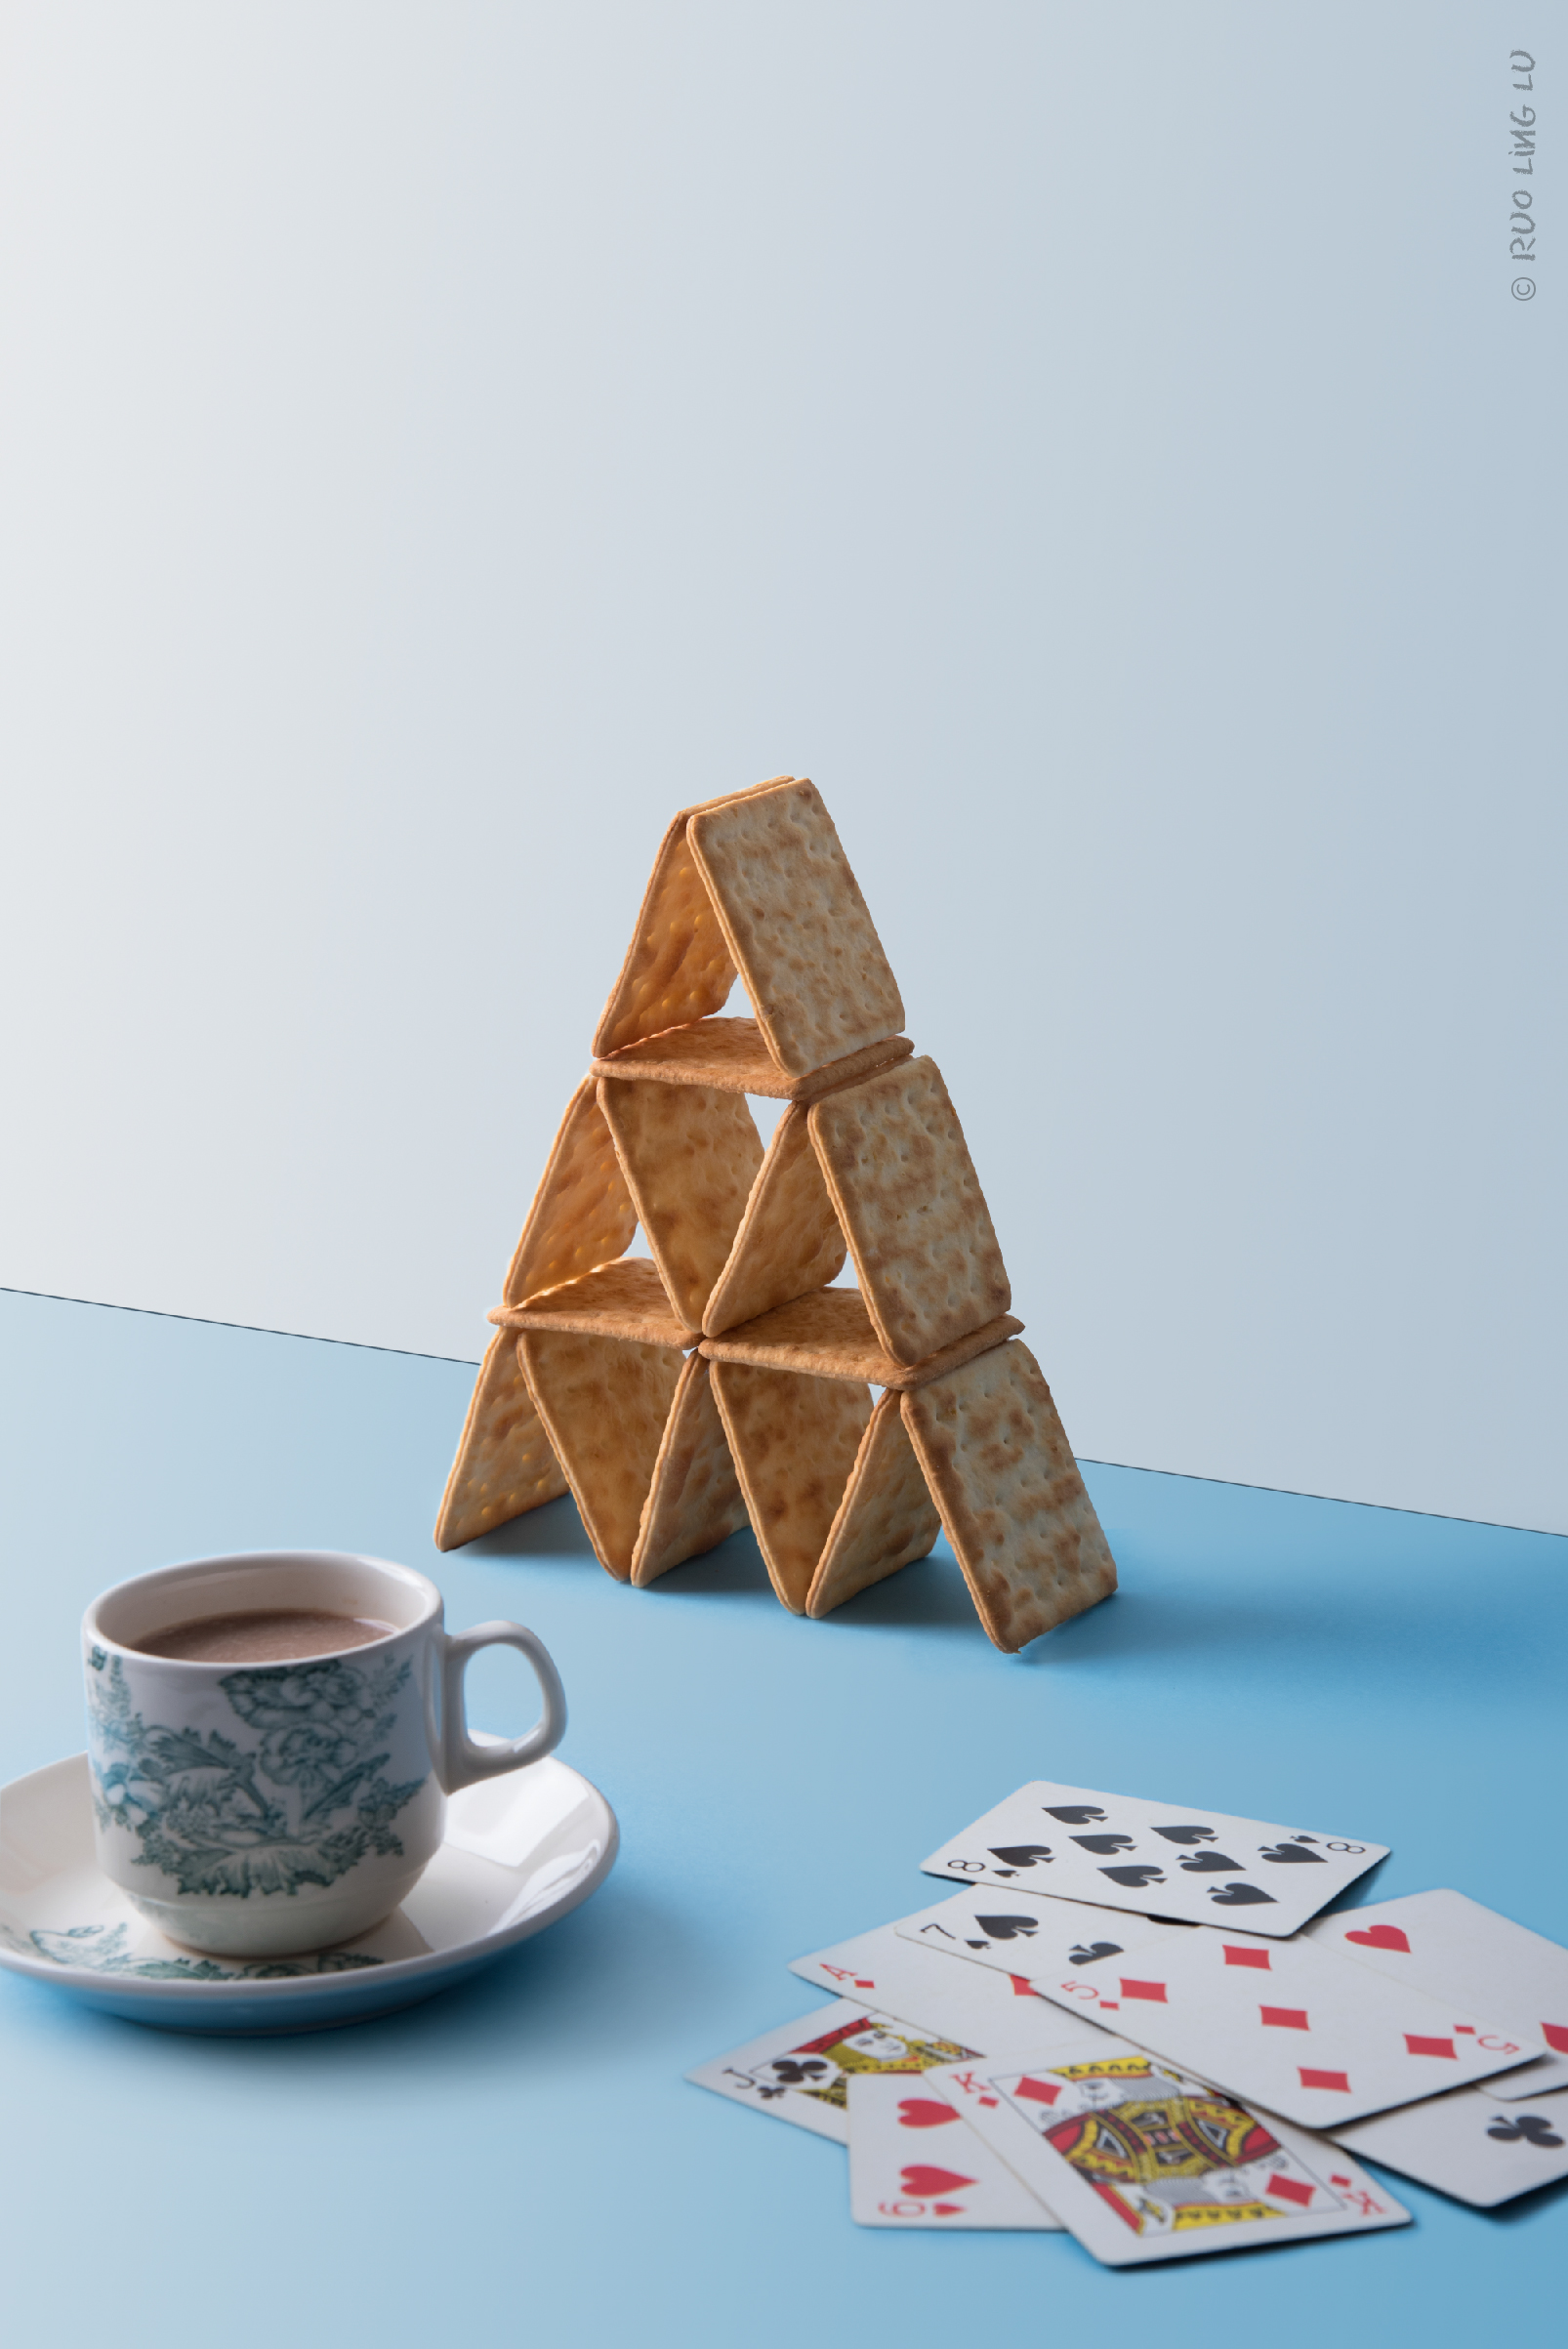 Child's Play: House of Cards by Ruo Ling Lu | A Beautiful Distraction by Ruo Ling Lu